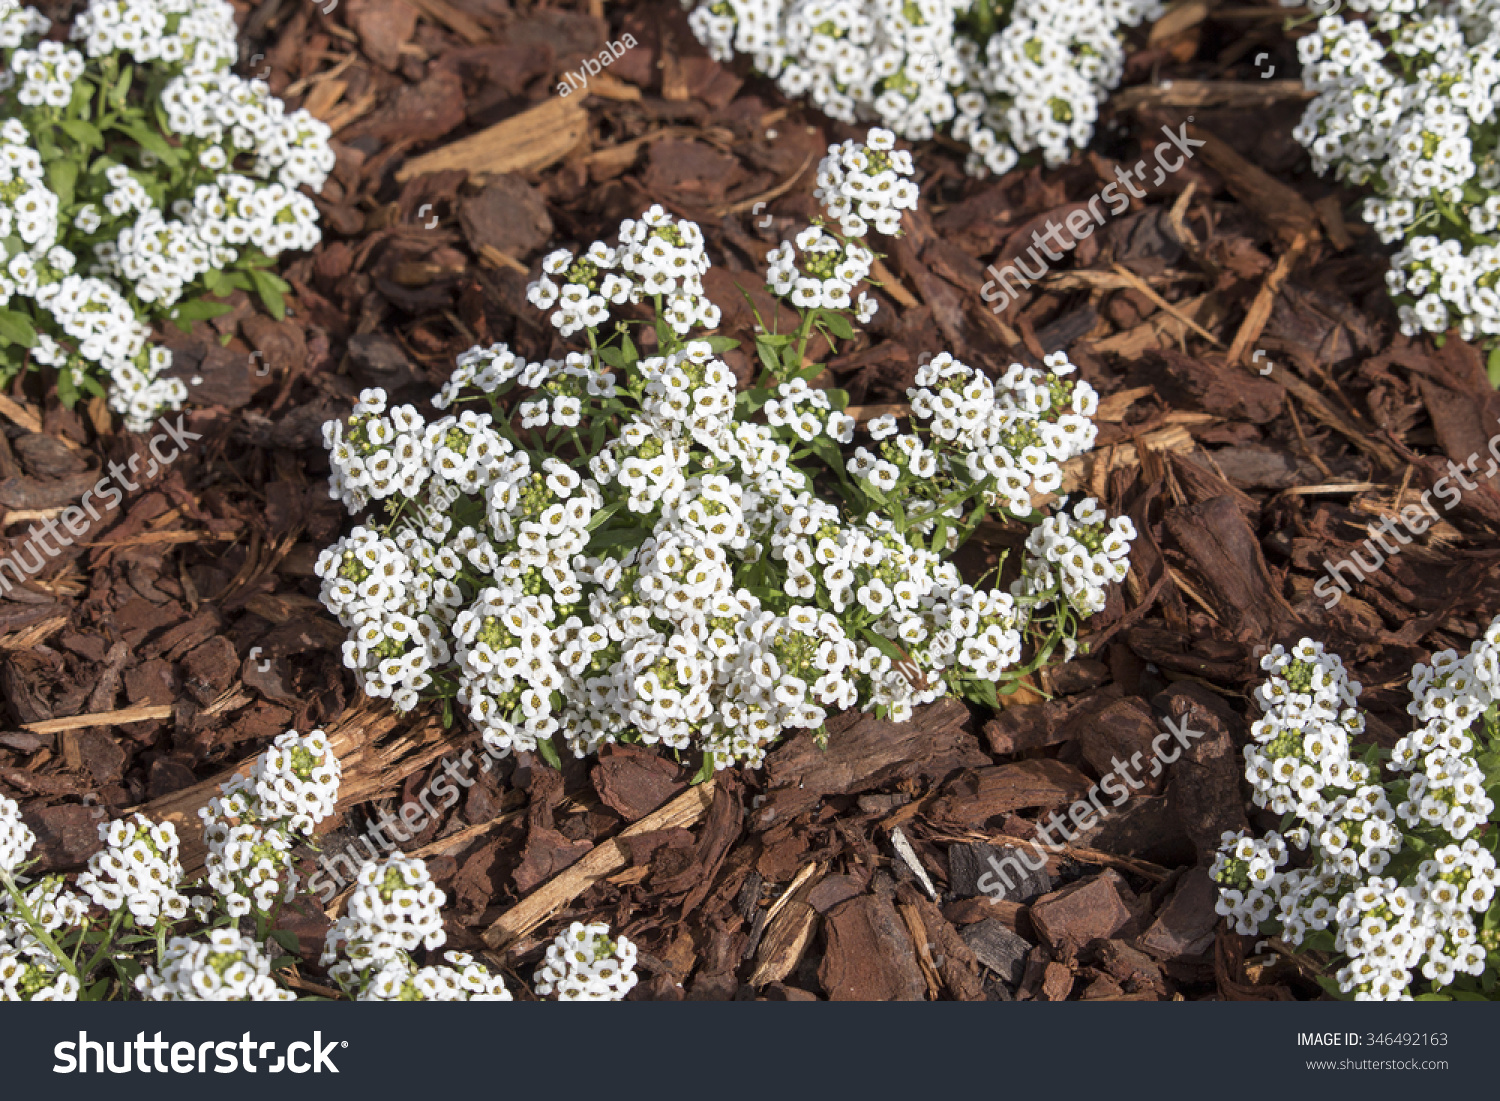 Royalty Free Dainty Snow White Flowers Of Lobularia 346492163